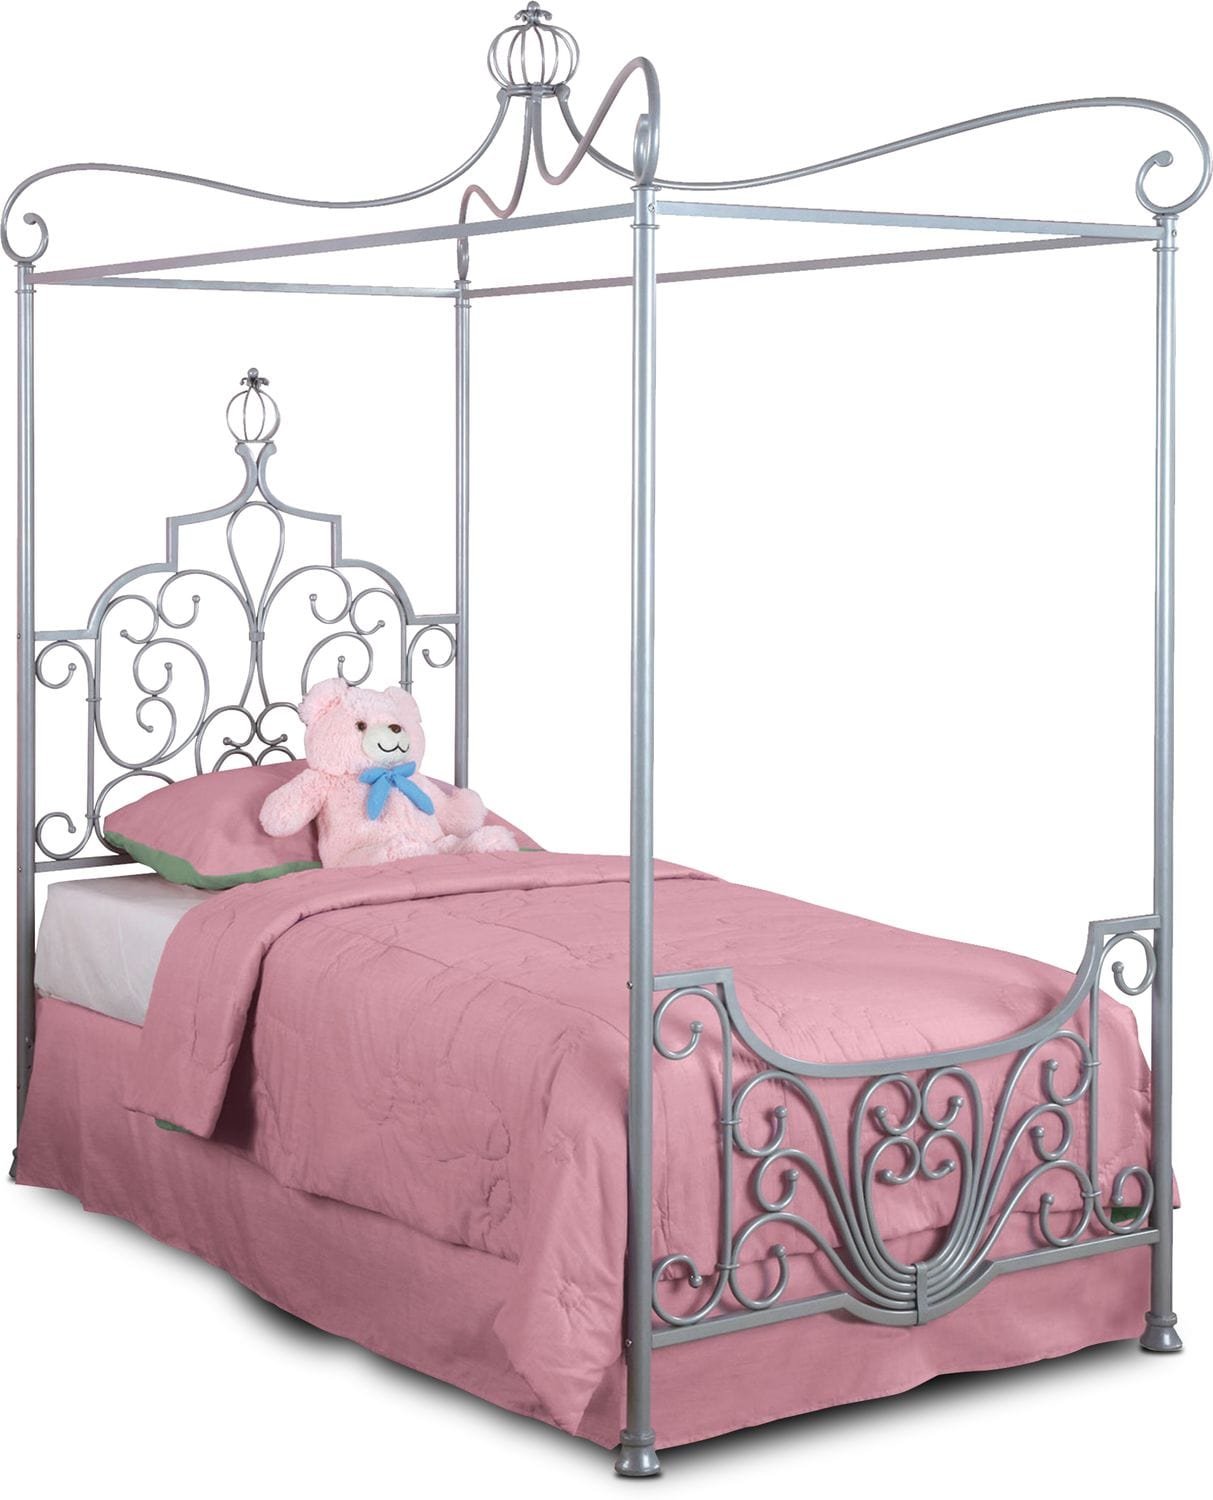 Kids Furniture - Princess Twin Canopy Bed - Gray